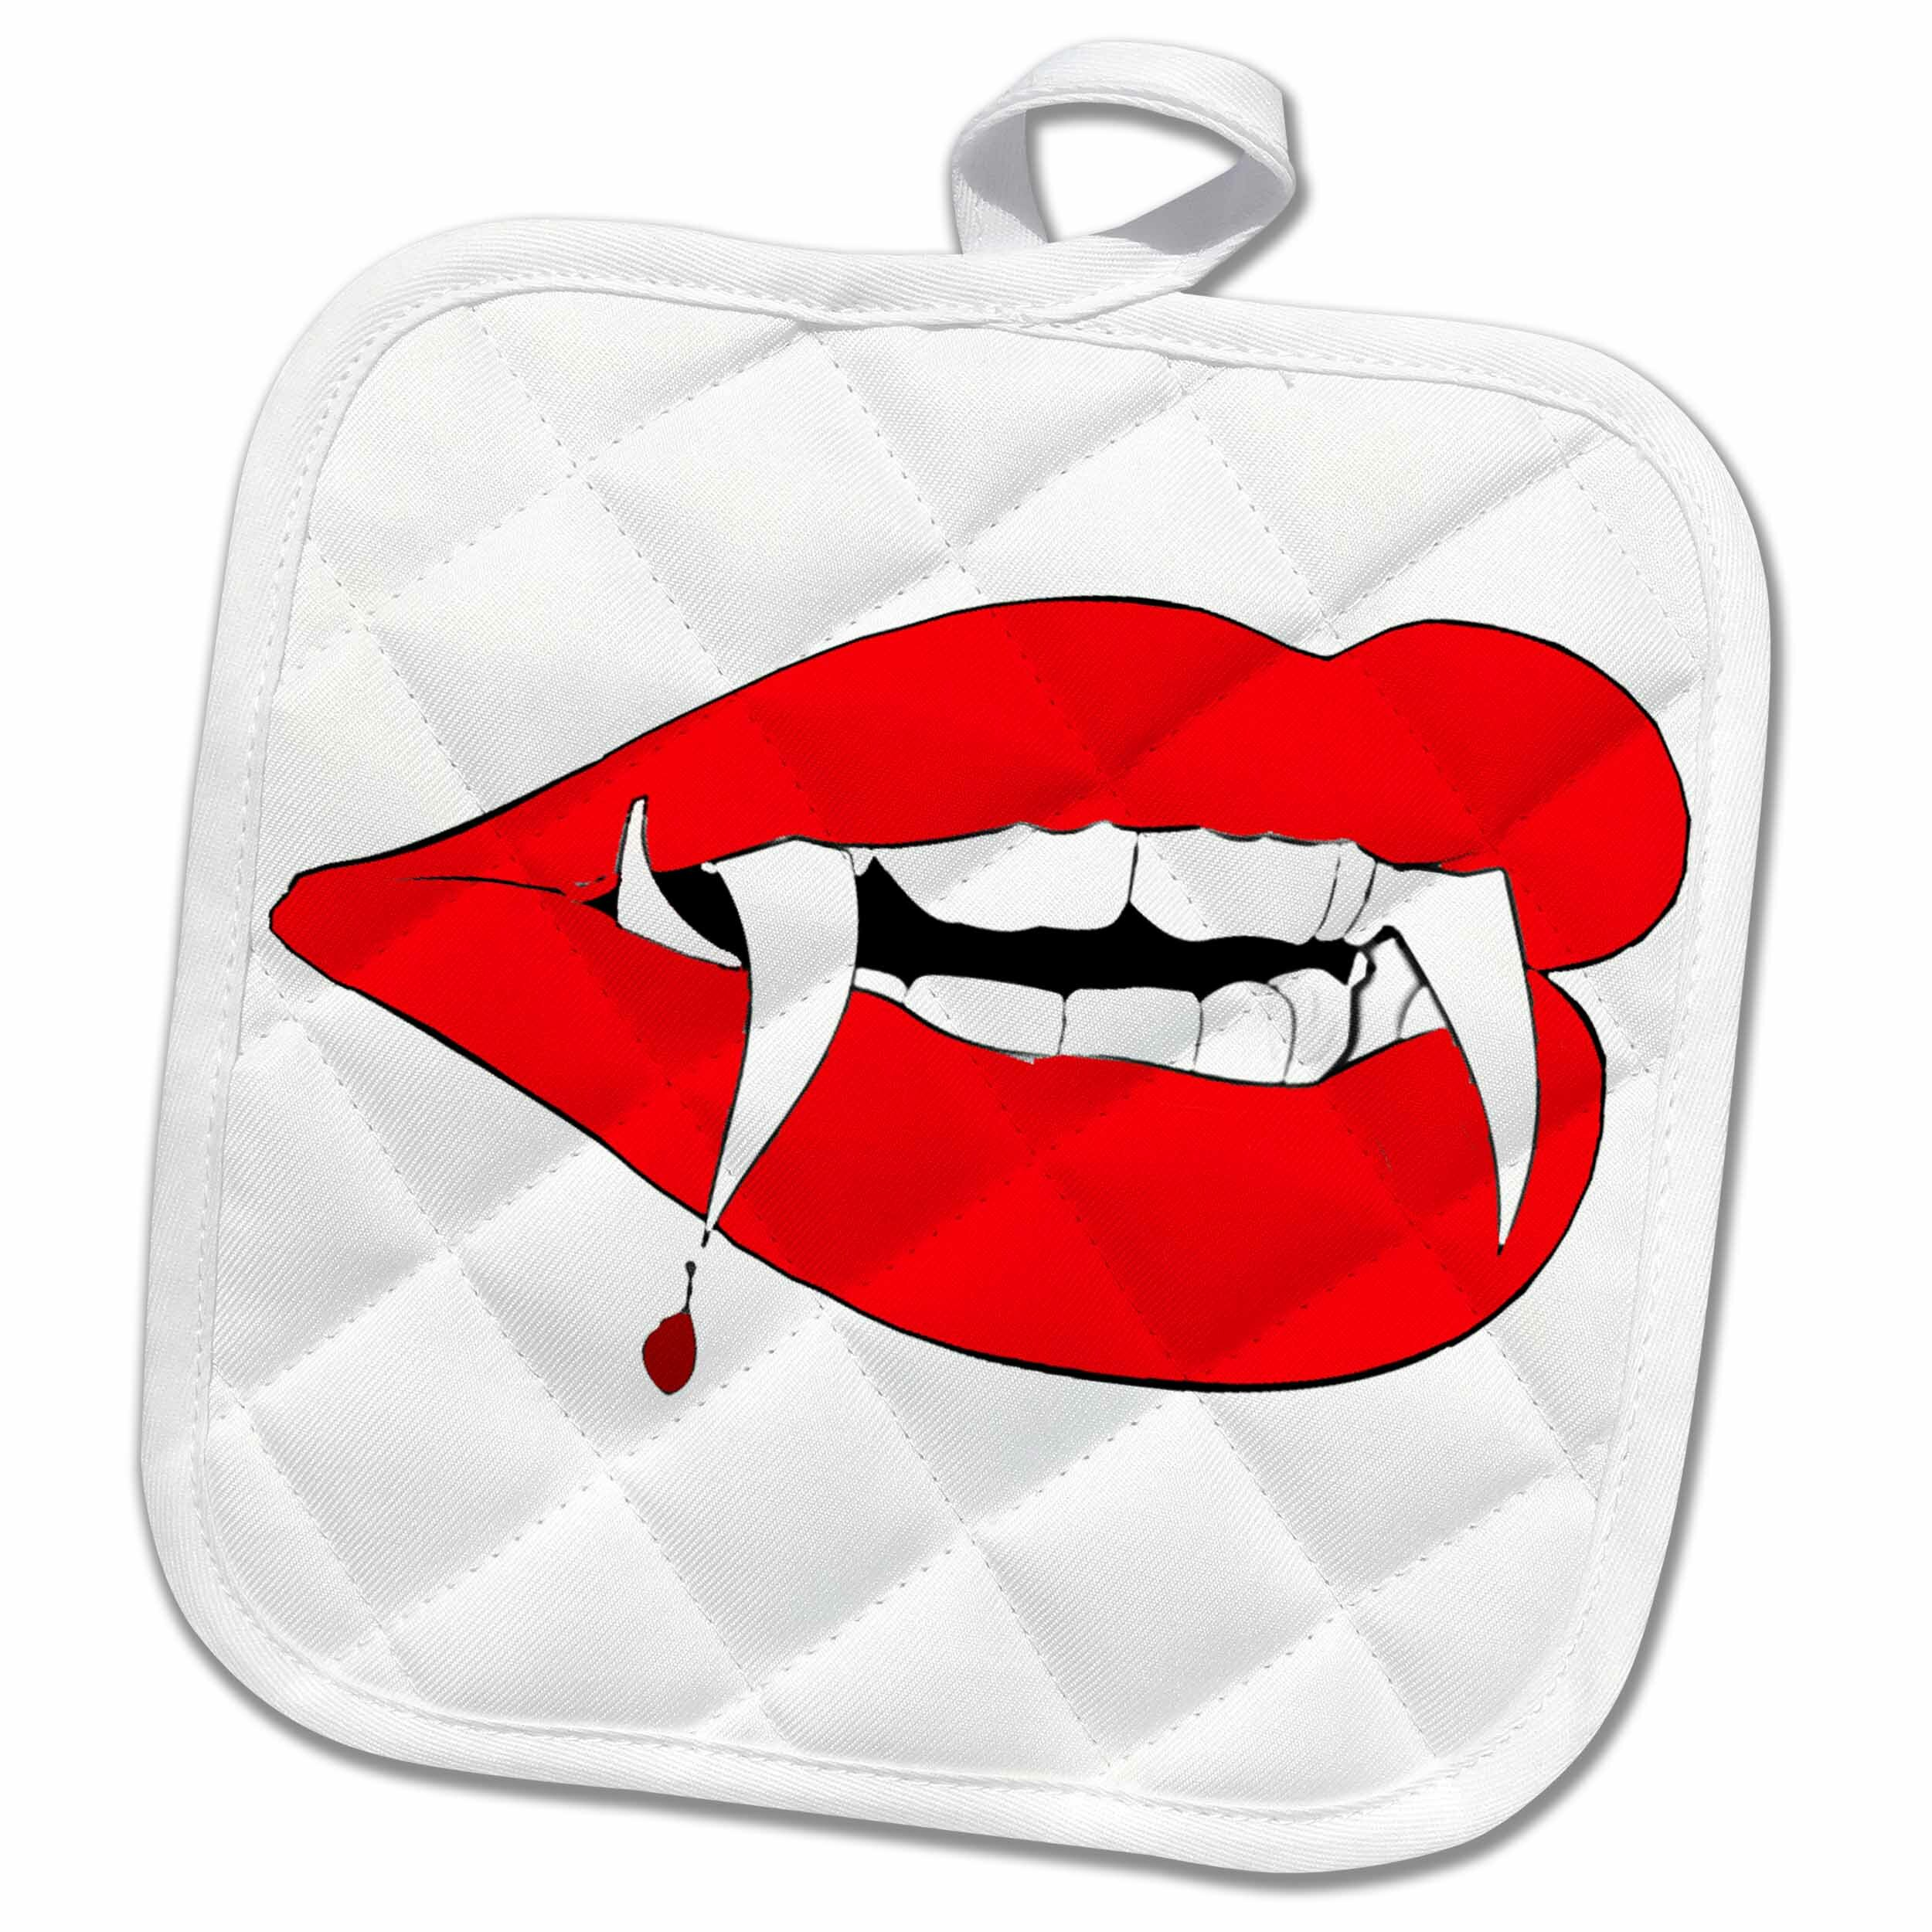 3drose Vampire Teeth Potholder Wayfair